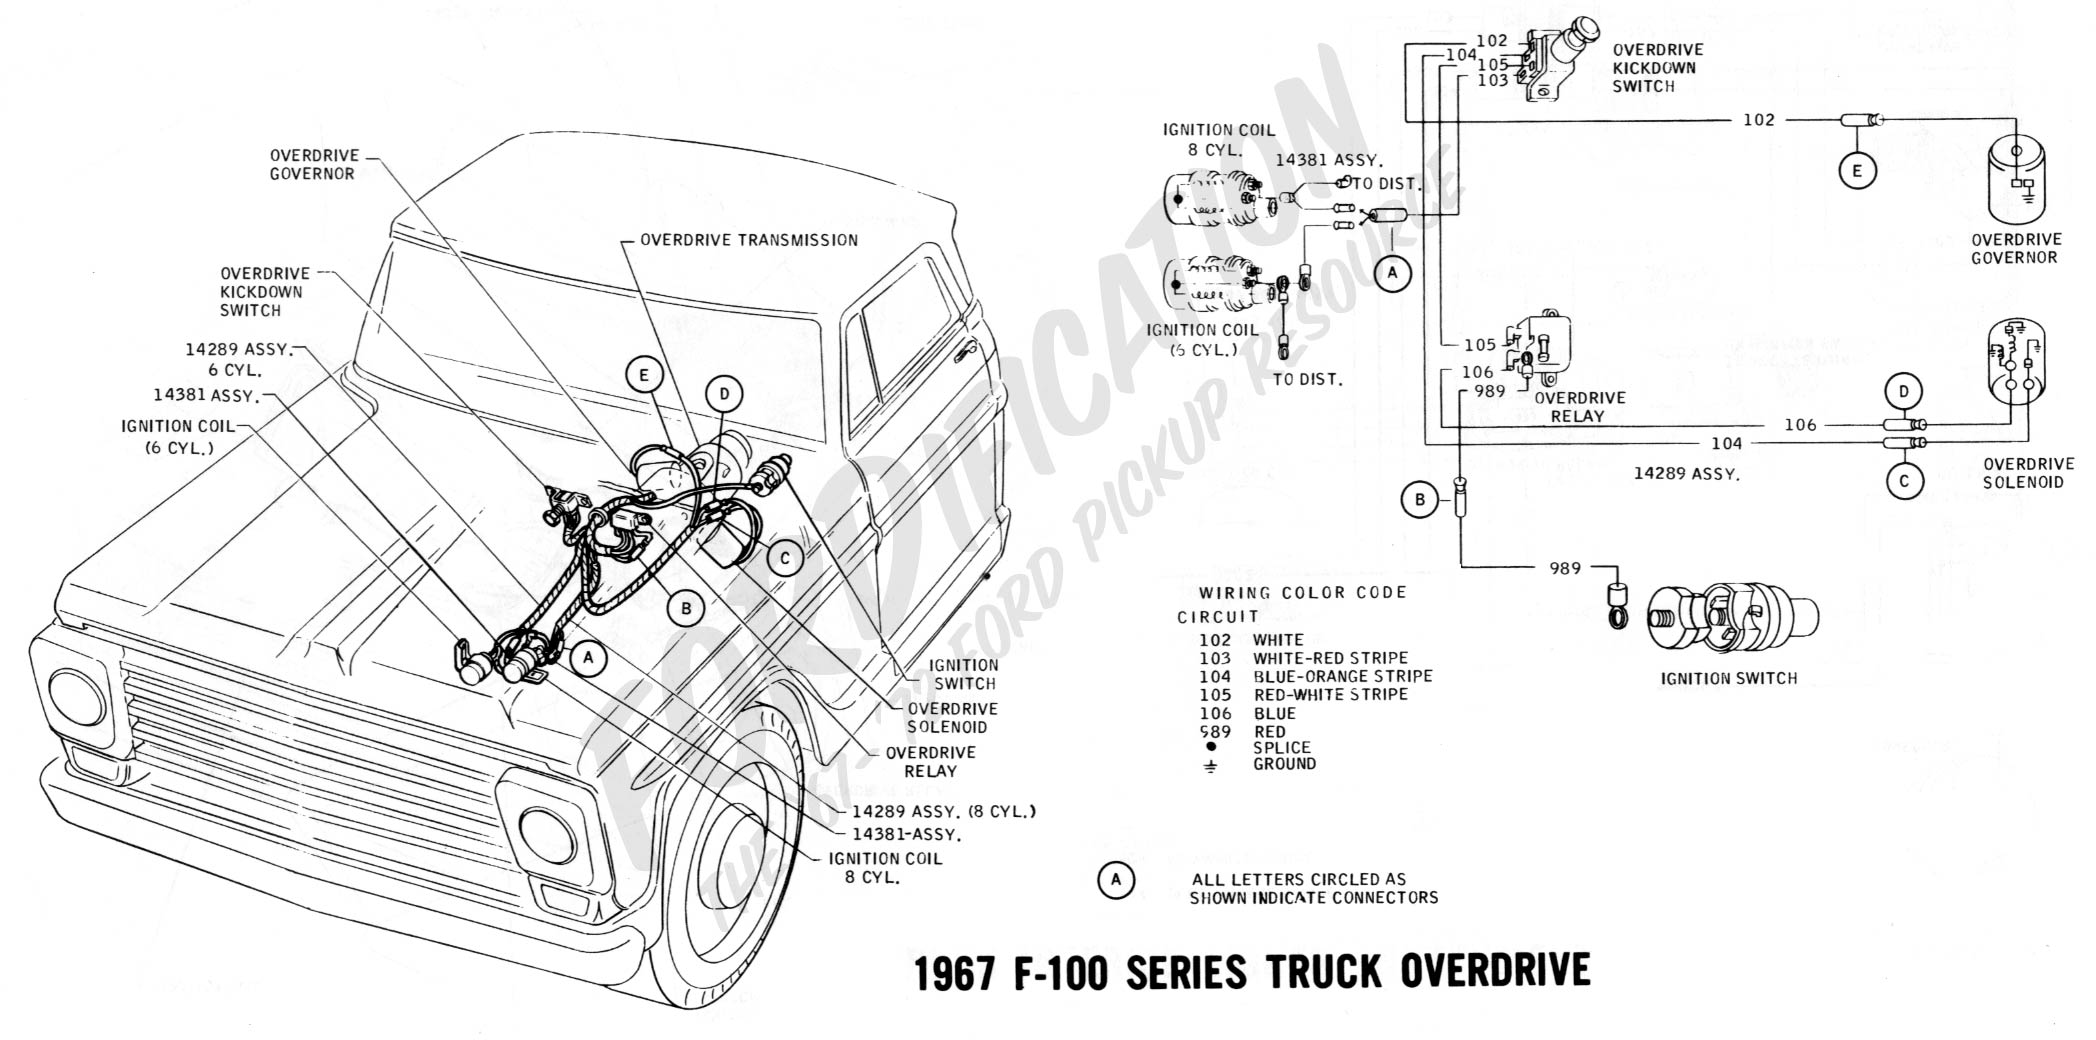 wiring 1967overdrive2 ford truck technical drawings and schematics section h wiring 1965 C10 Wiring-Diagram at alyssarenee.co